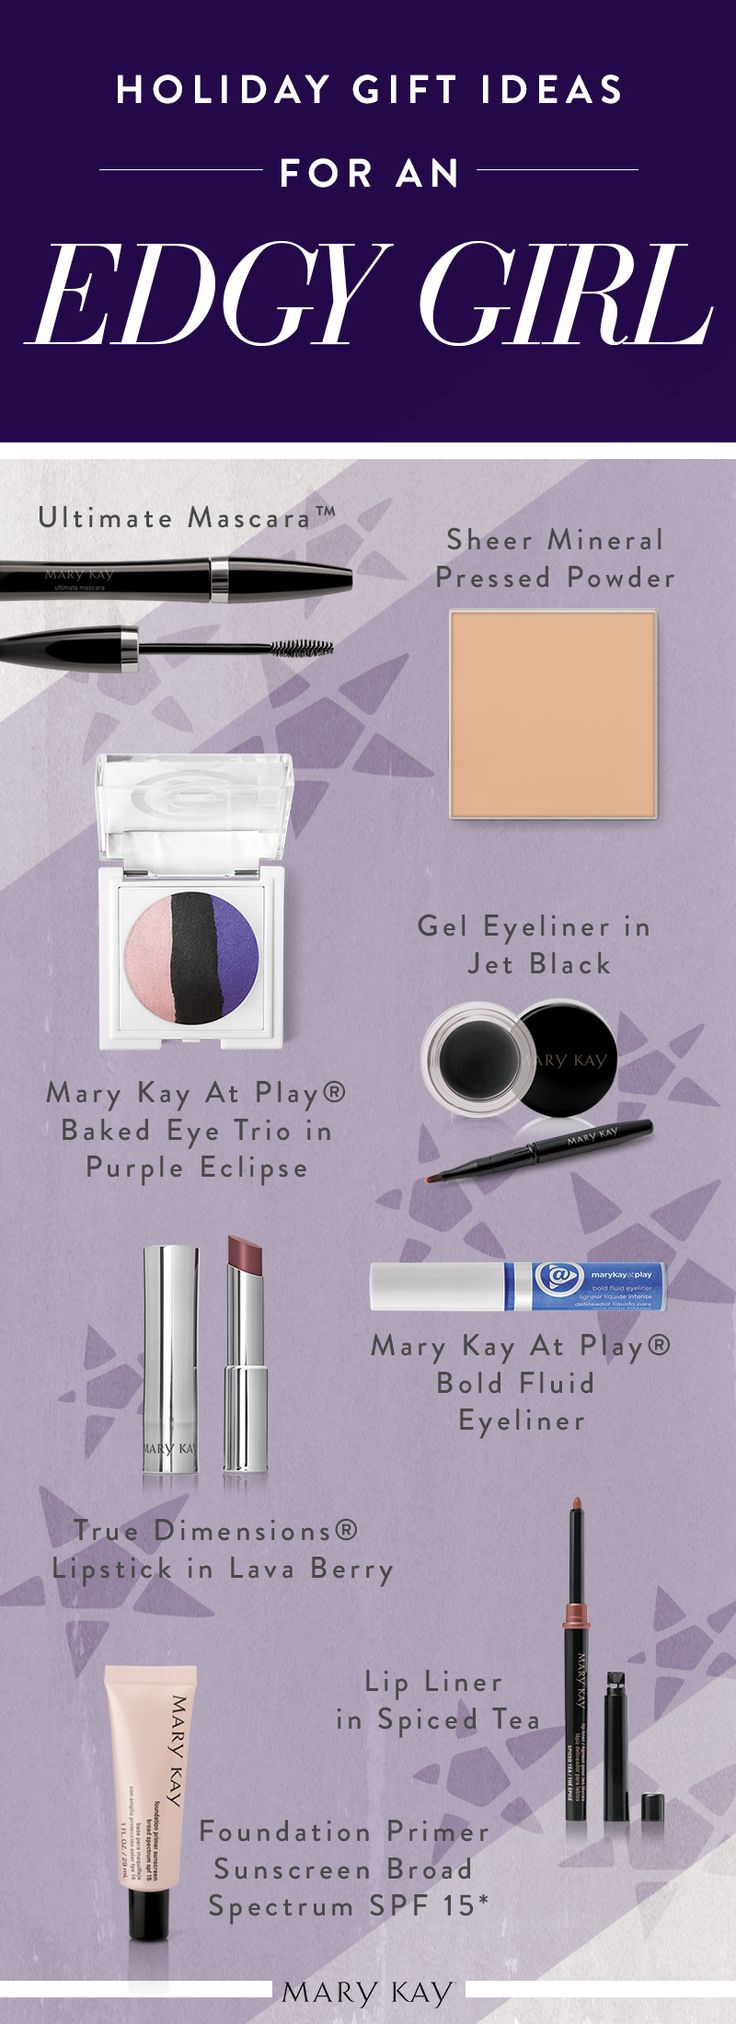 Go bold with Gel Eyeliner in Jet Black, True Dimensions® Lipstick in Lava Berry, and Mary Kay At Play® Baked Eye Trio in Purple Eclipse. These eight products make the ideal gift for a girl who loves edgy makeup looks!